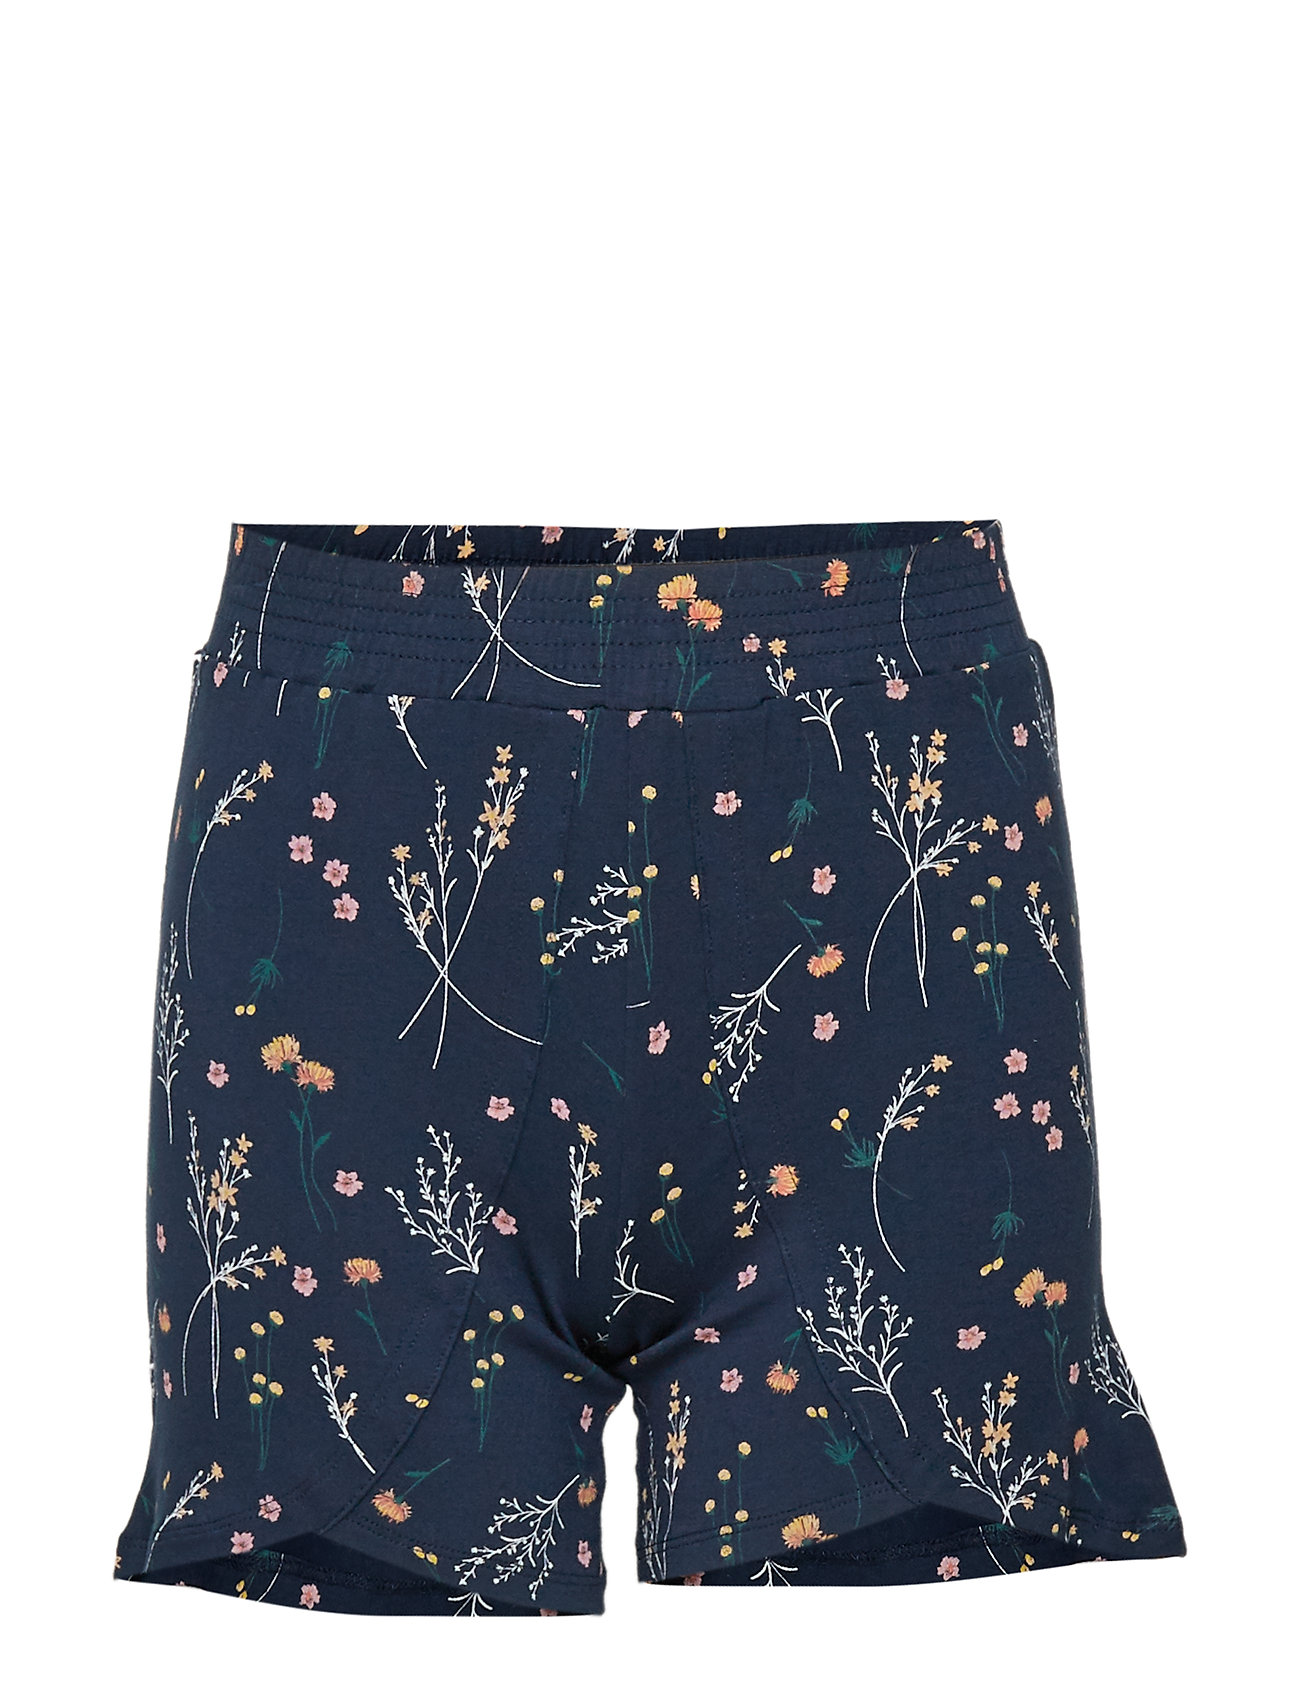 The New LOLLY SHORTS - BLACK IRIS